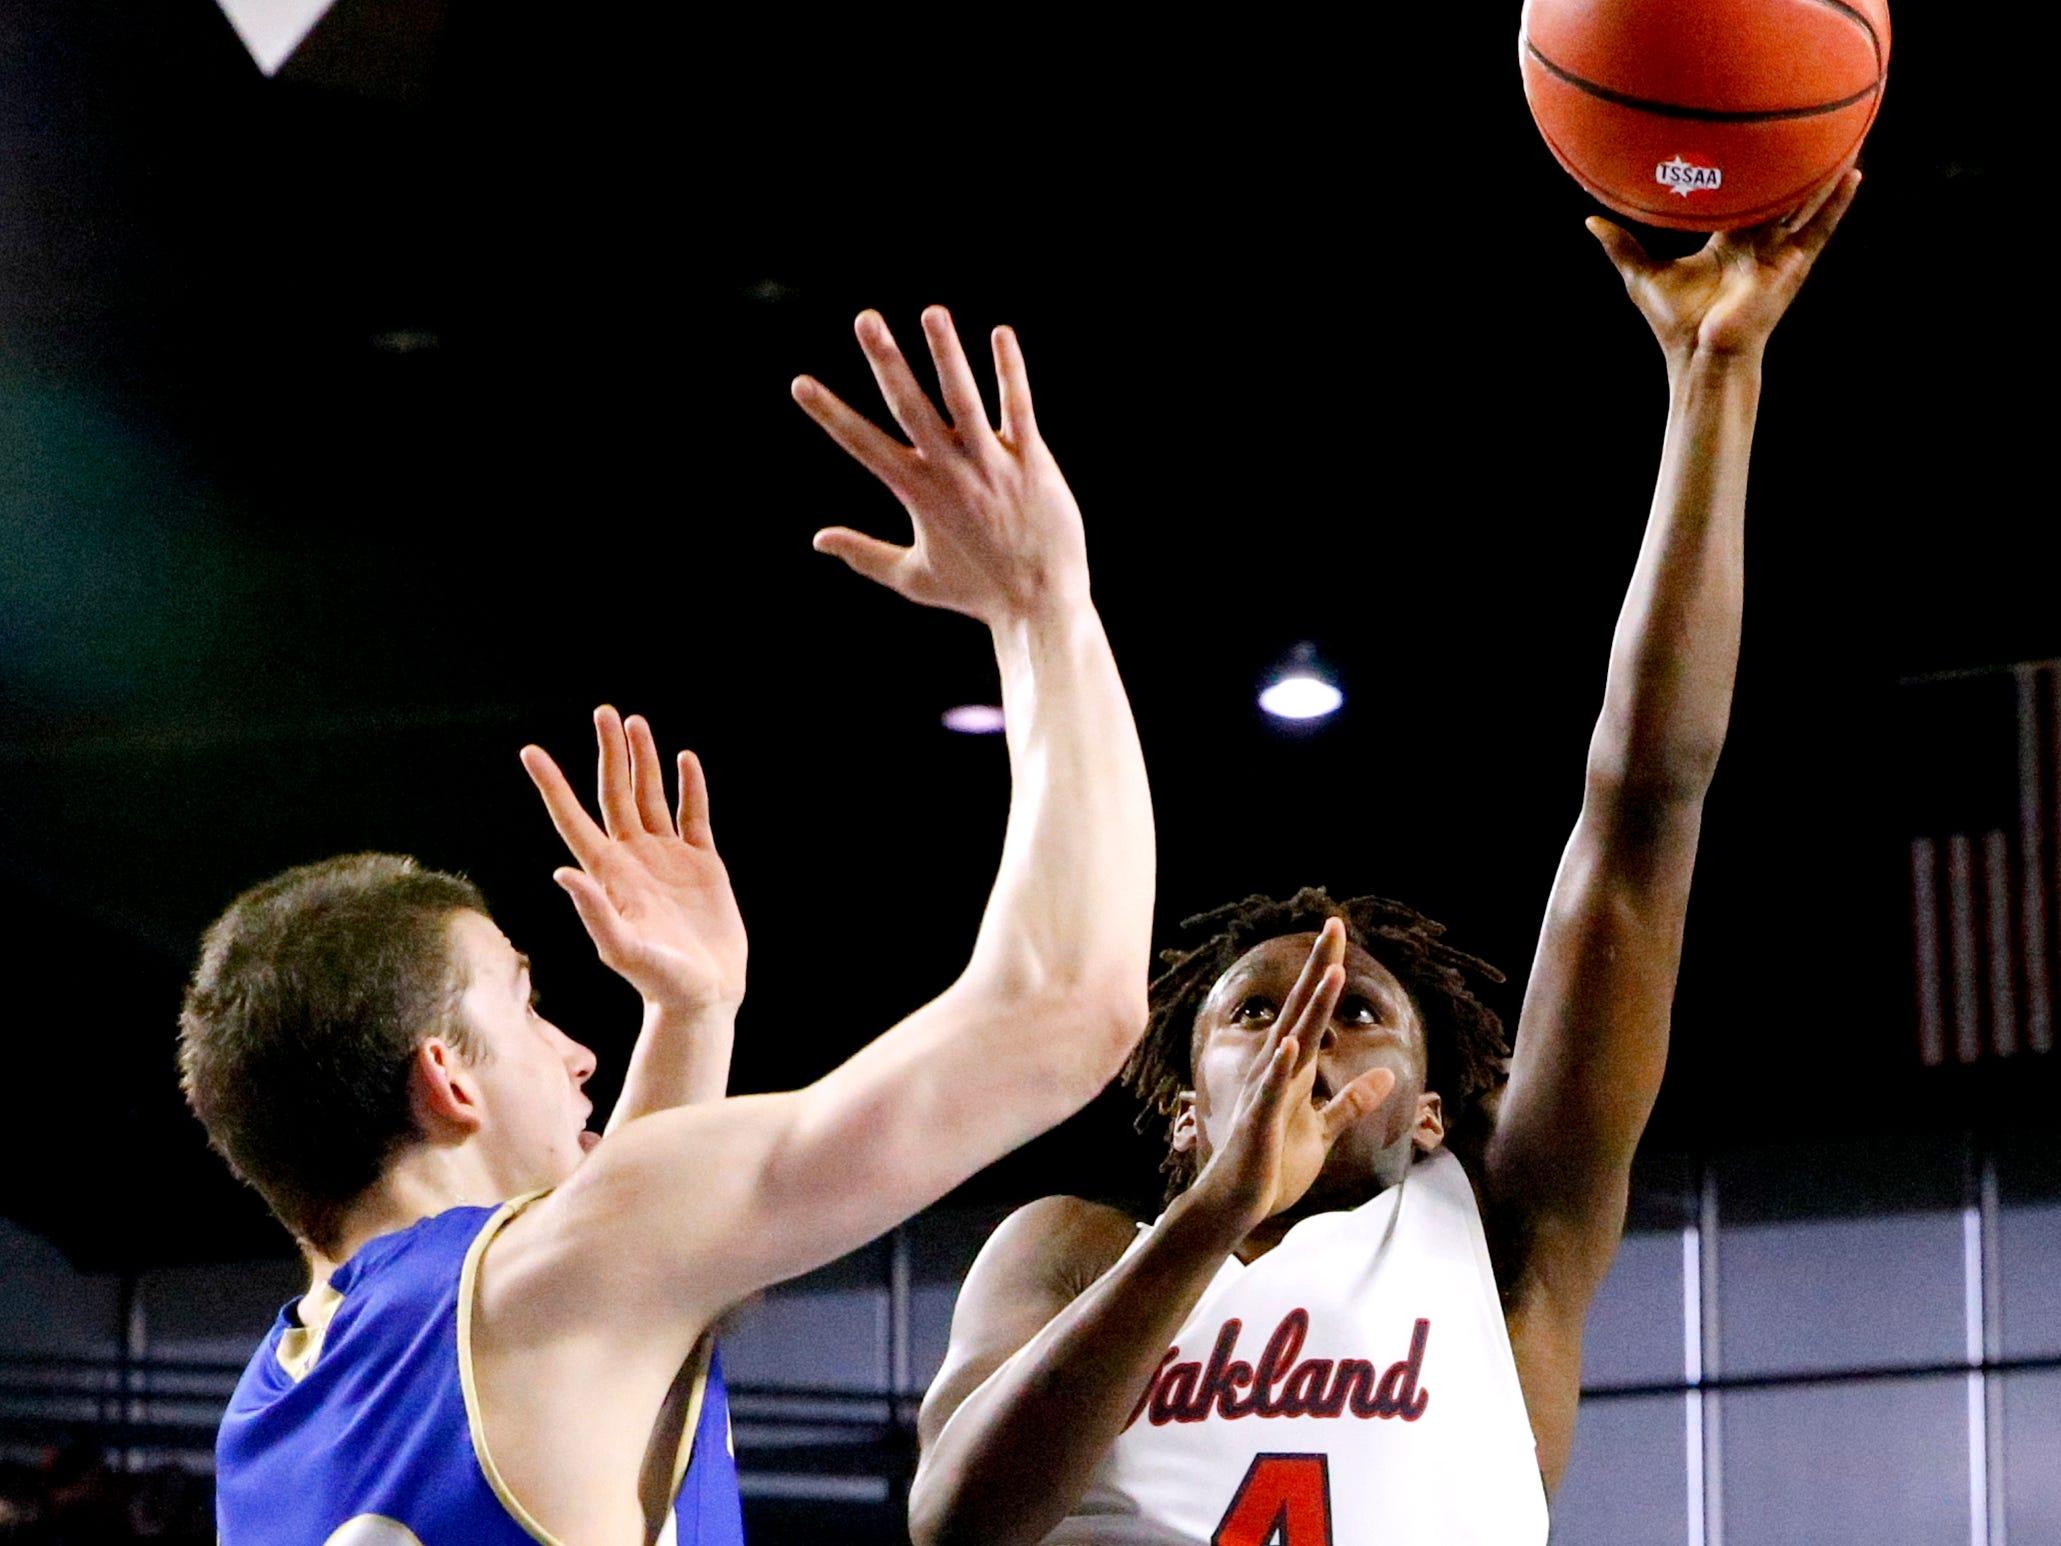 Oakland's Mandrell Grant (4) shoots the ball as Brentwood's Harry Lackey (22) guards him during the quarterfinal round of the TSSAA Class AAA Boys State Tournament, on Thursday, March 14, 2019, at Murphy Center in Murfreesboro, Tenn.